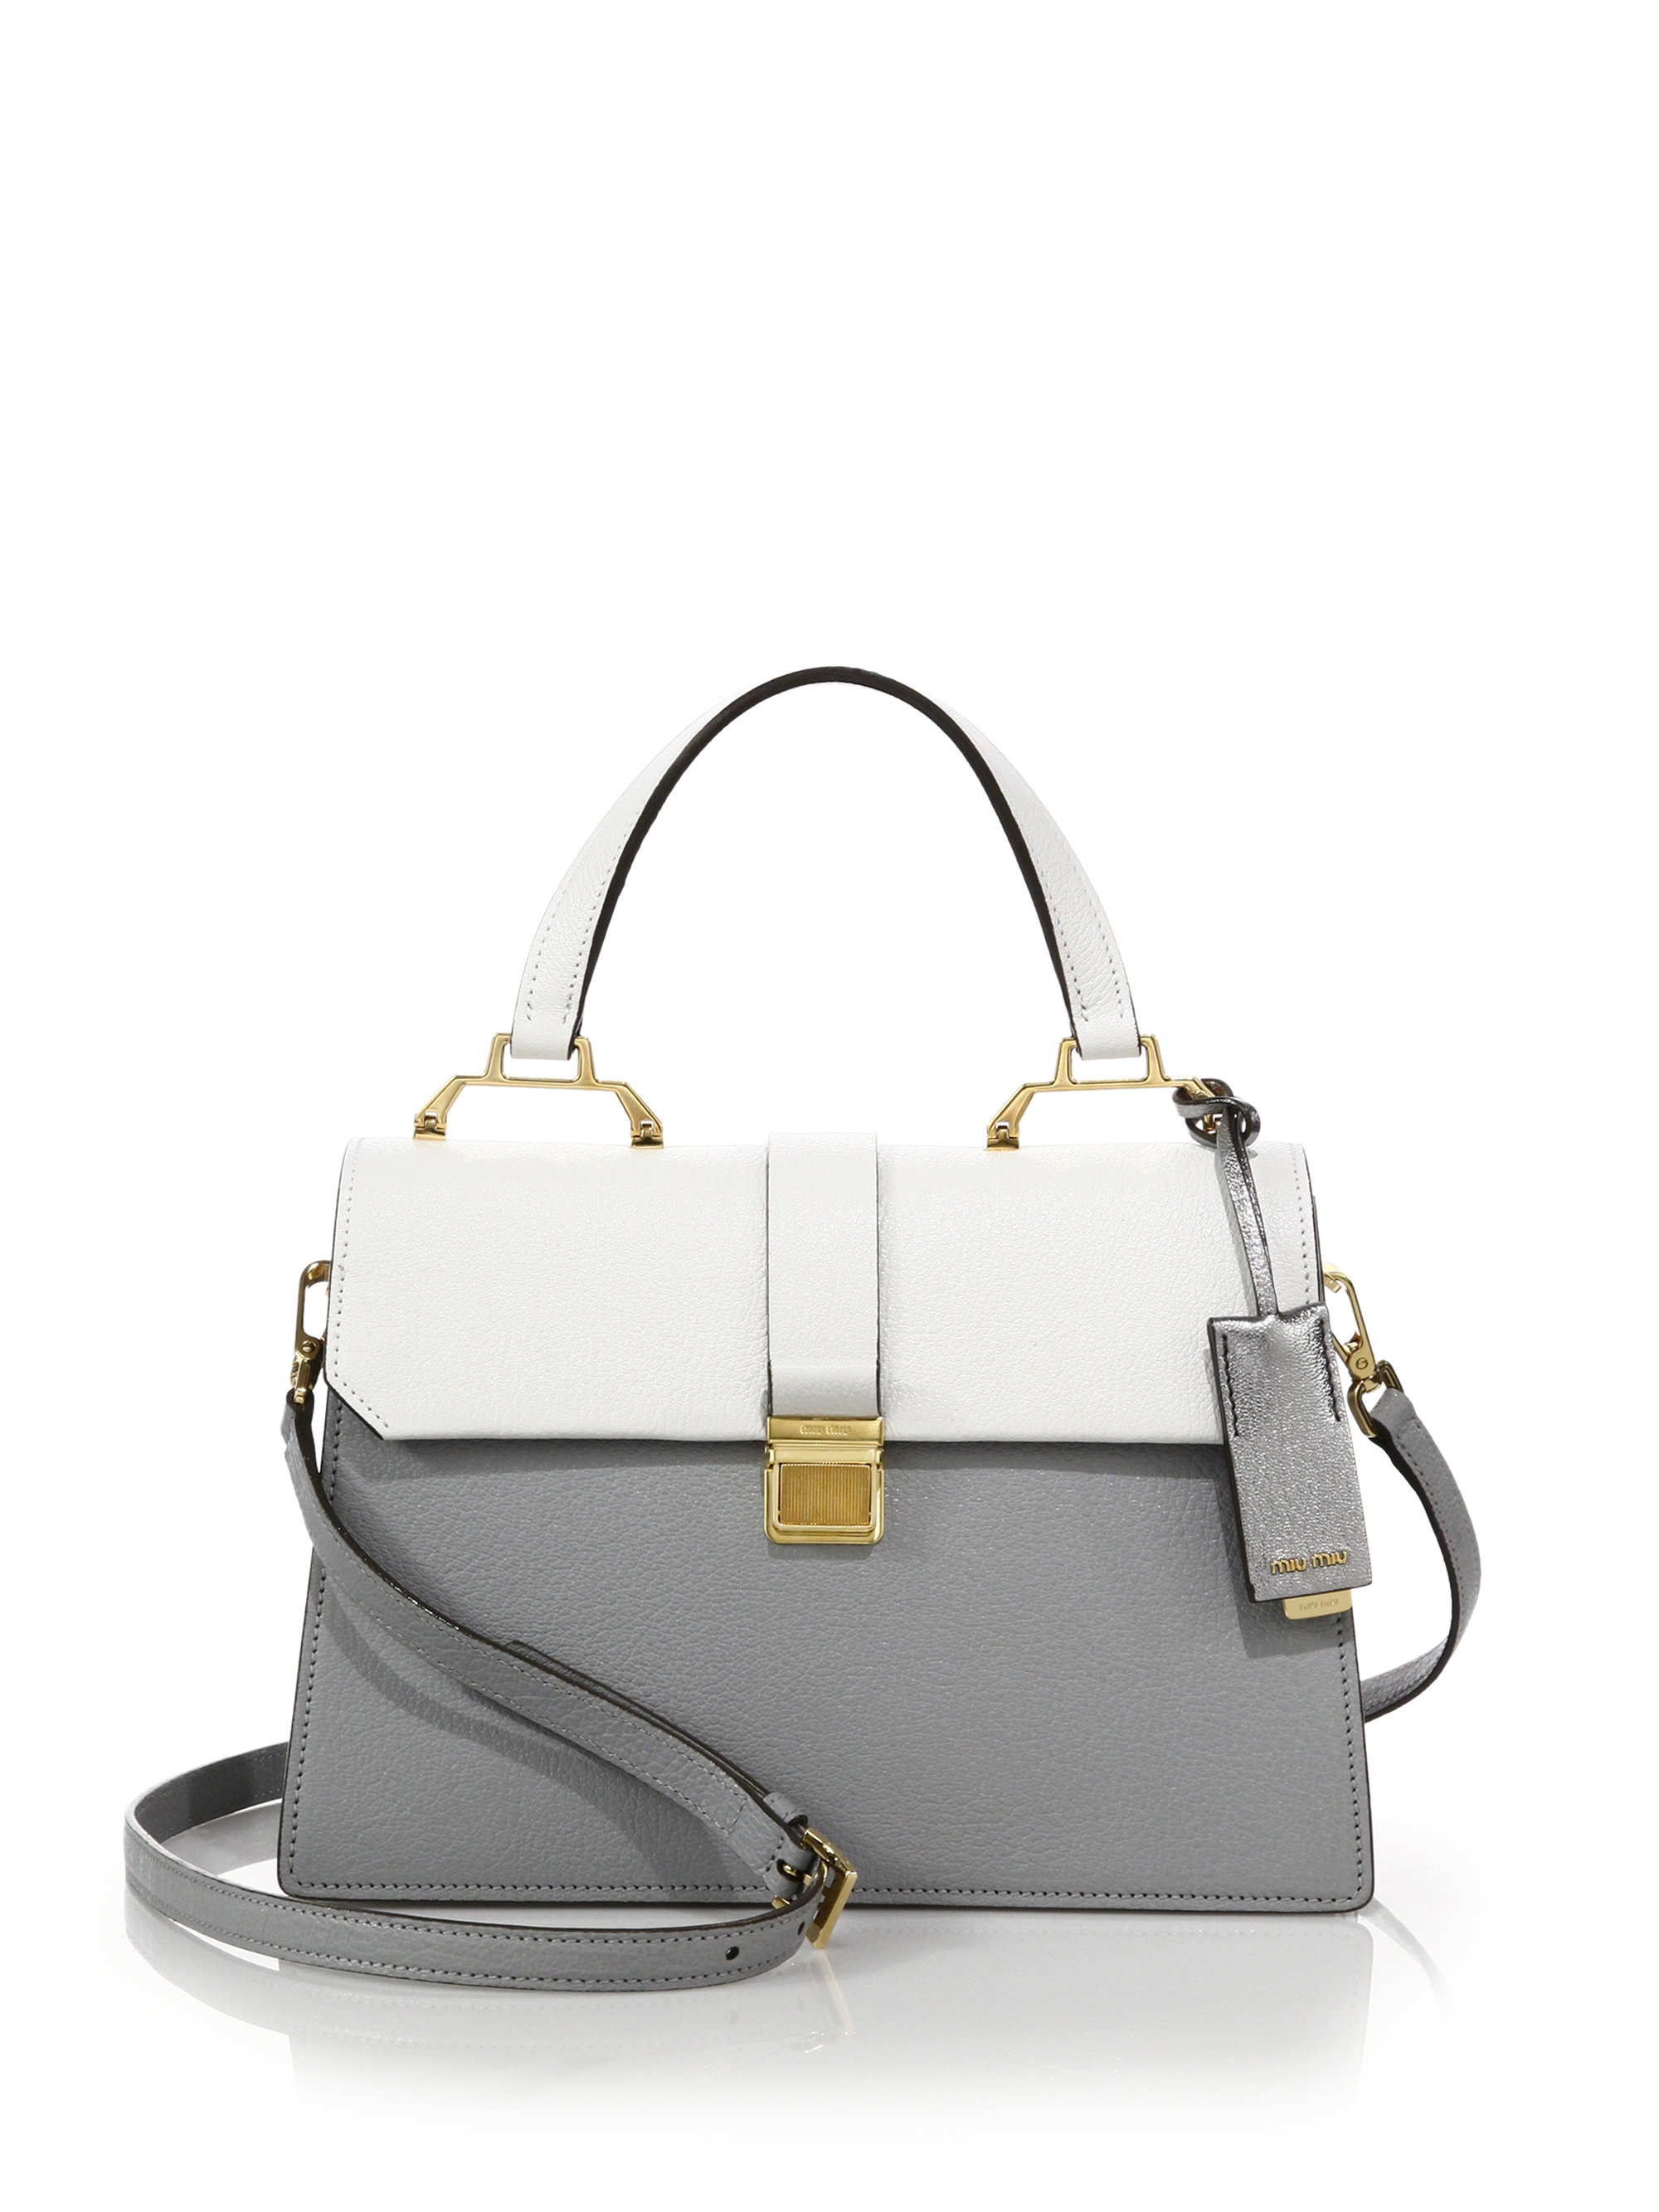 2af2f138593d Miu miu Madras Two-tone Leather Top-handle Satchel in Gray .